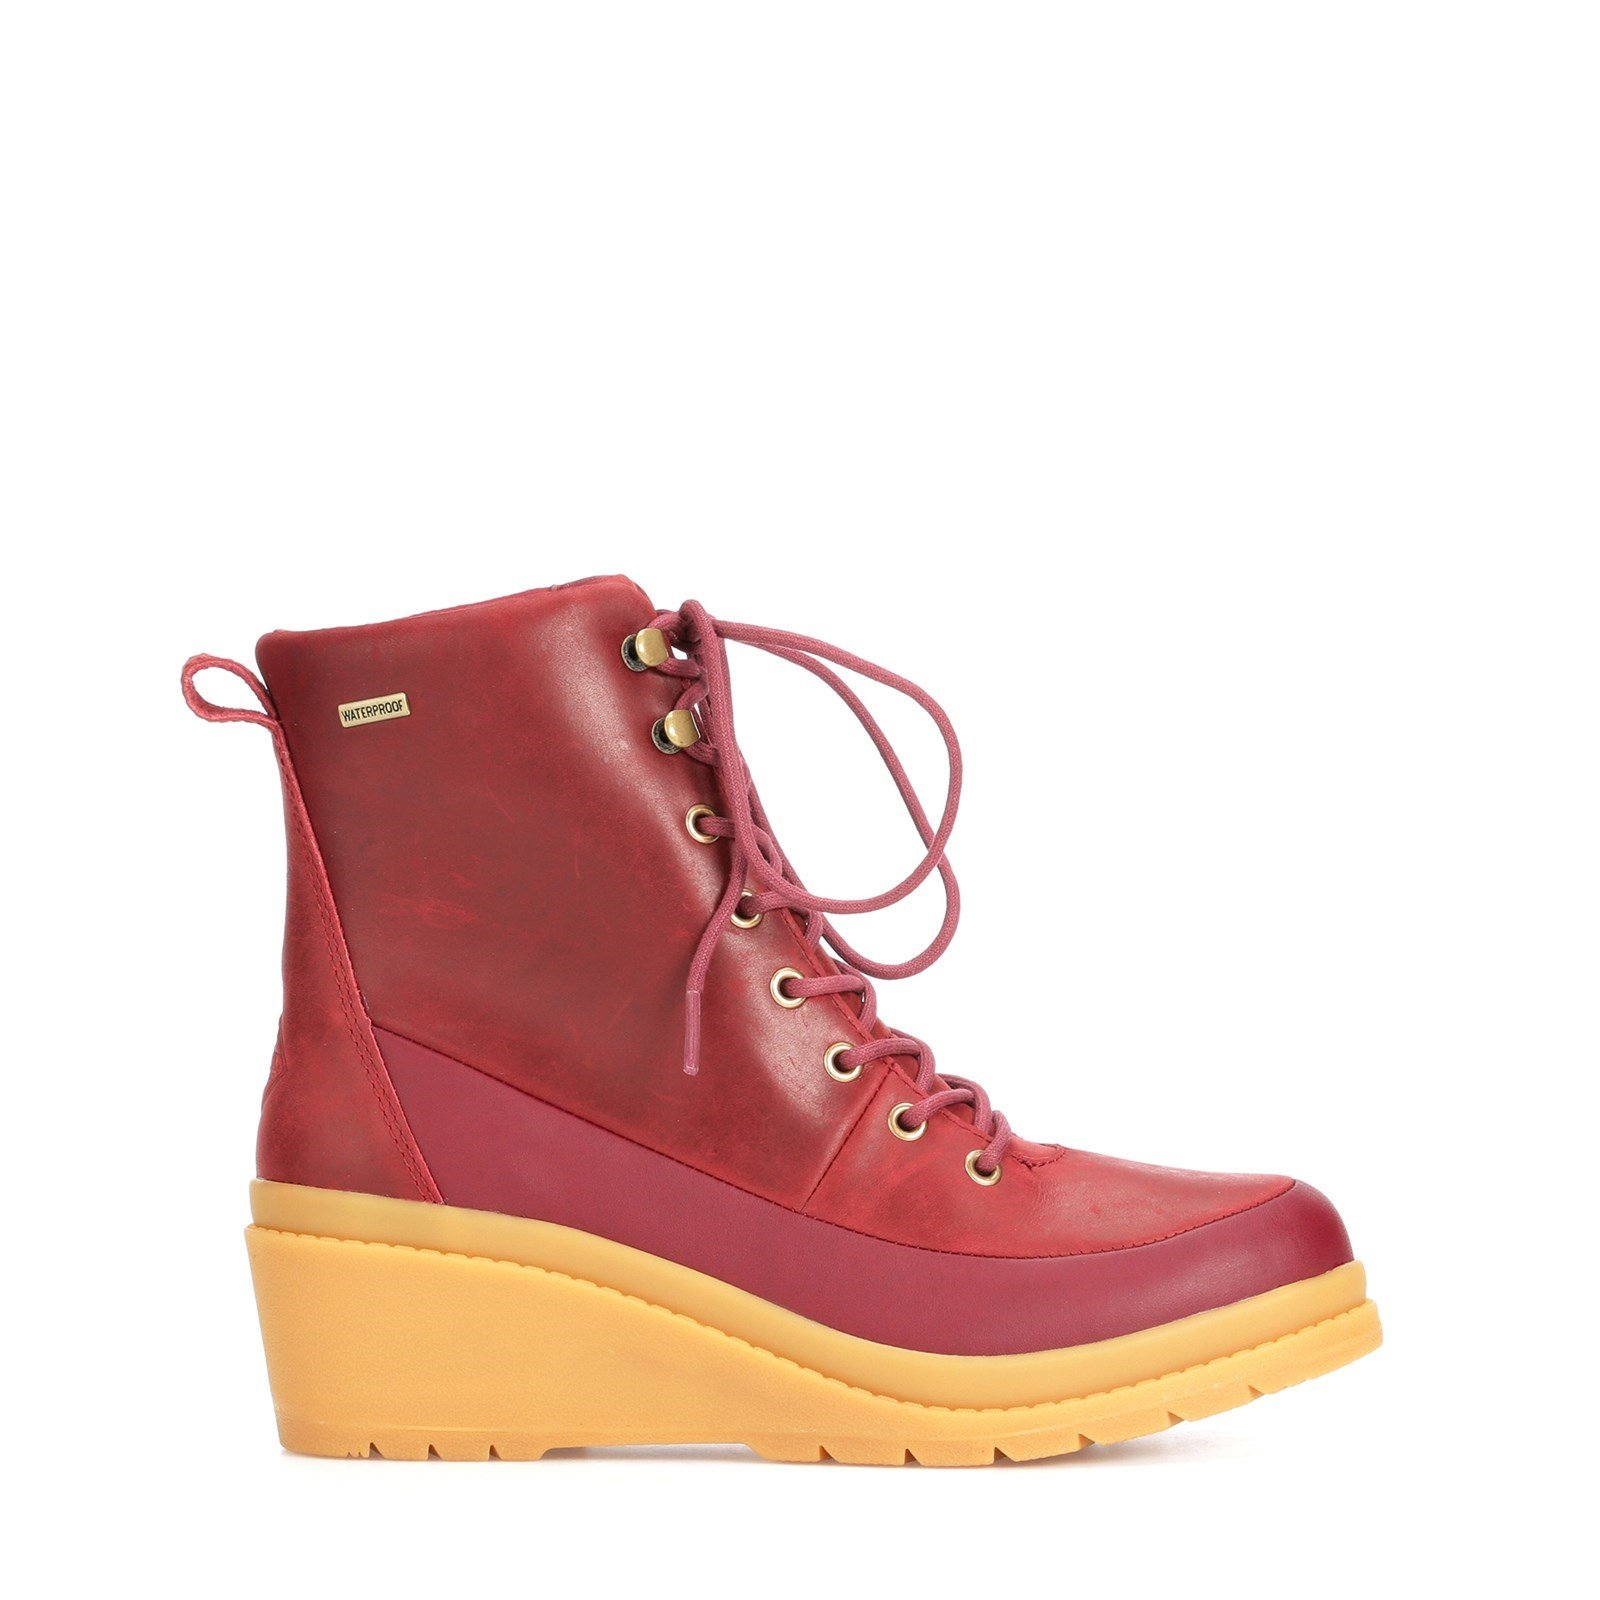 Muck Boots Women's Liberty Leather Ankle Boots Various Colours 31813 - Cordovan 6.5